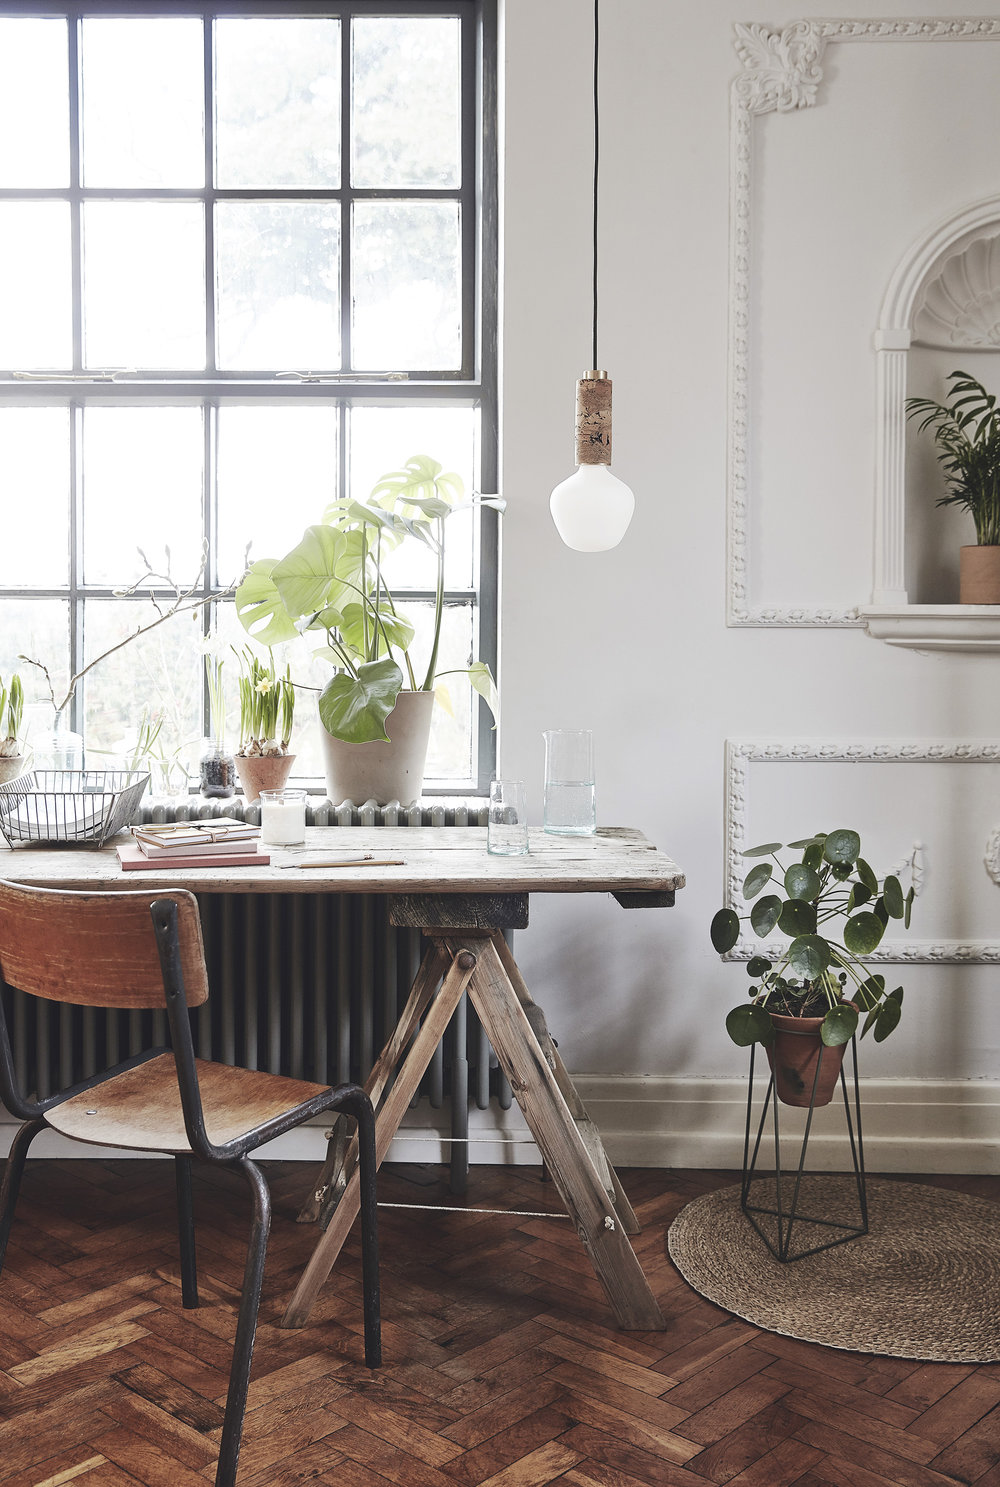 Cork lighting –    Nove Lighting   ; Organic cotton stationary –    Folk Interiors   ; Drinking glass and carafe –    Form Lifestyle   ; Terracotta planter on stand –    Object Style   ; Reclaimed wire tray and vintage terracotta pots on windowsill –    The Old Potato Store